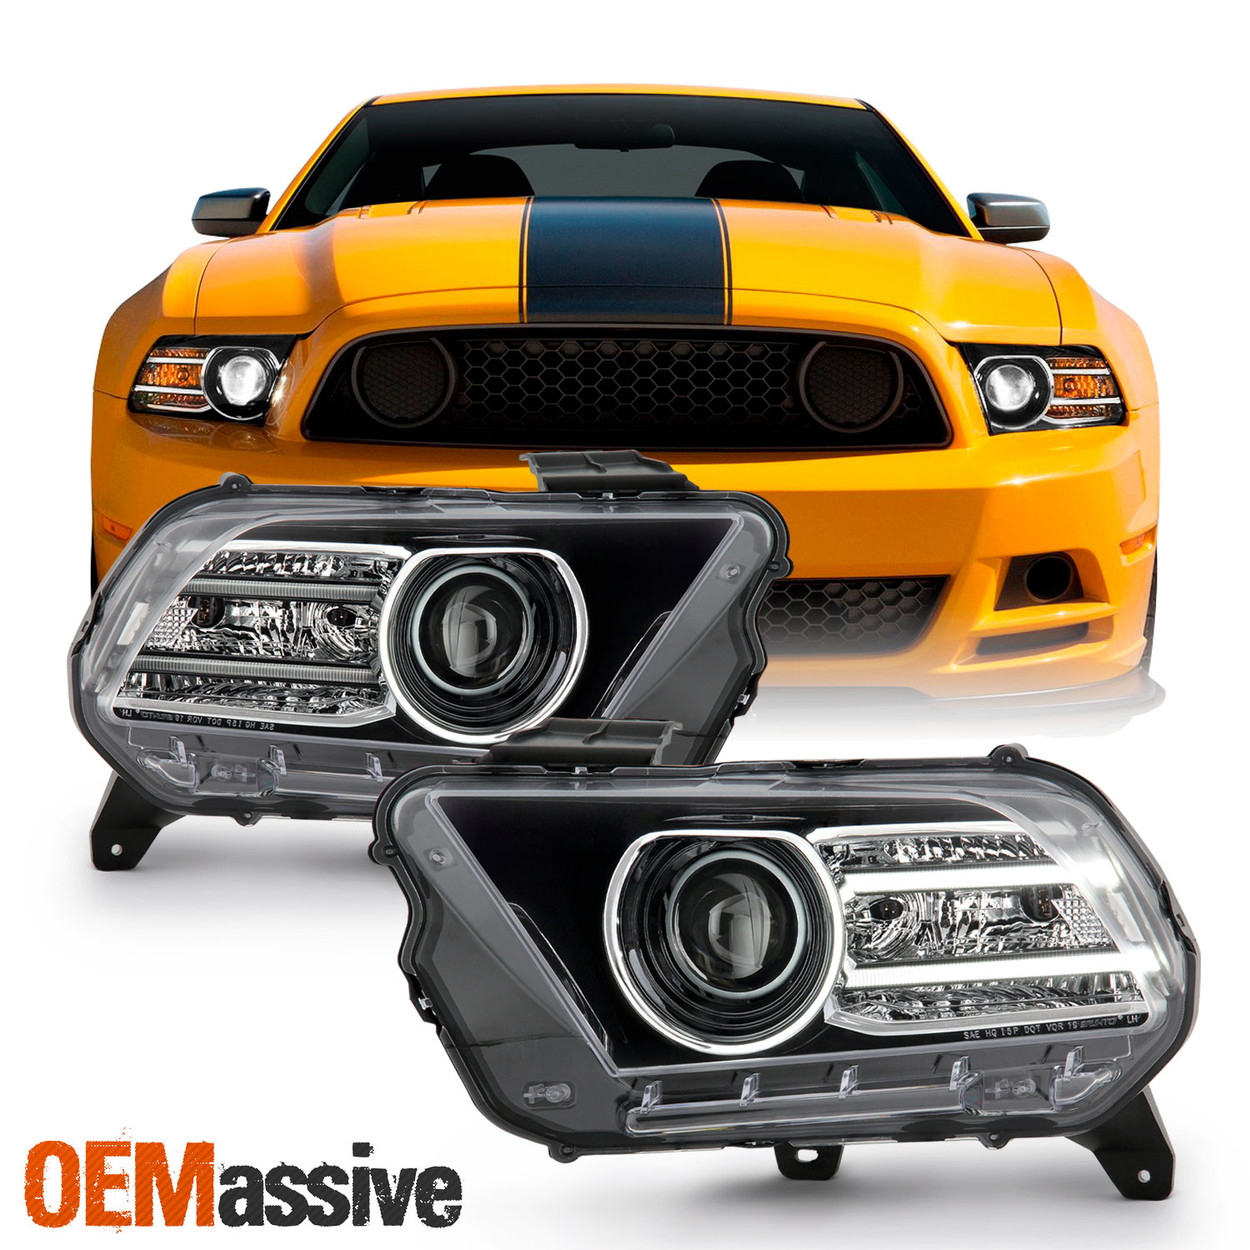 Headlight Assembly for 2010-2014 Ford Mustang Chrome Housing Headlamp Replacement with Amber Reflector Front Driving Light Passenger and Driver Side Chrome